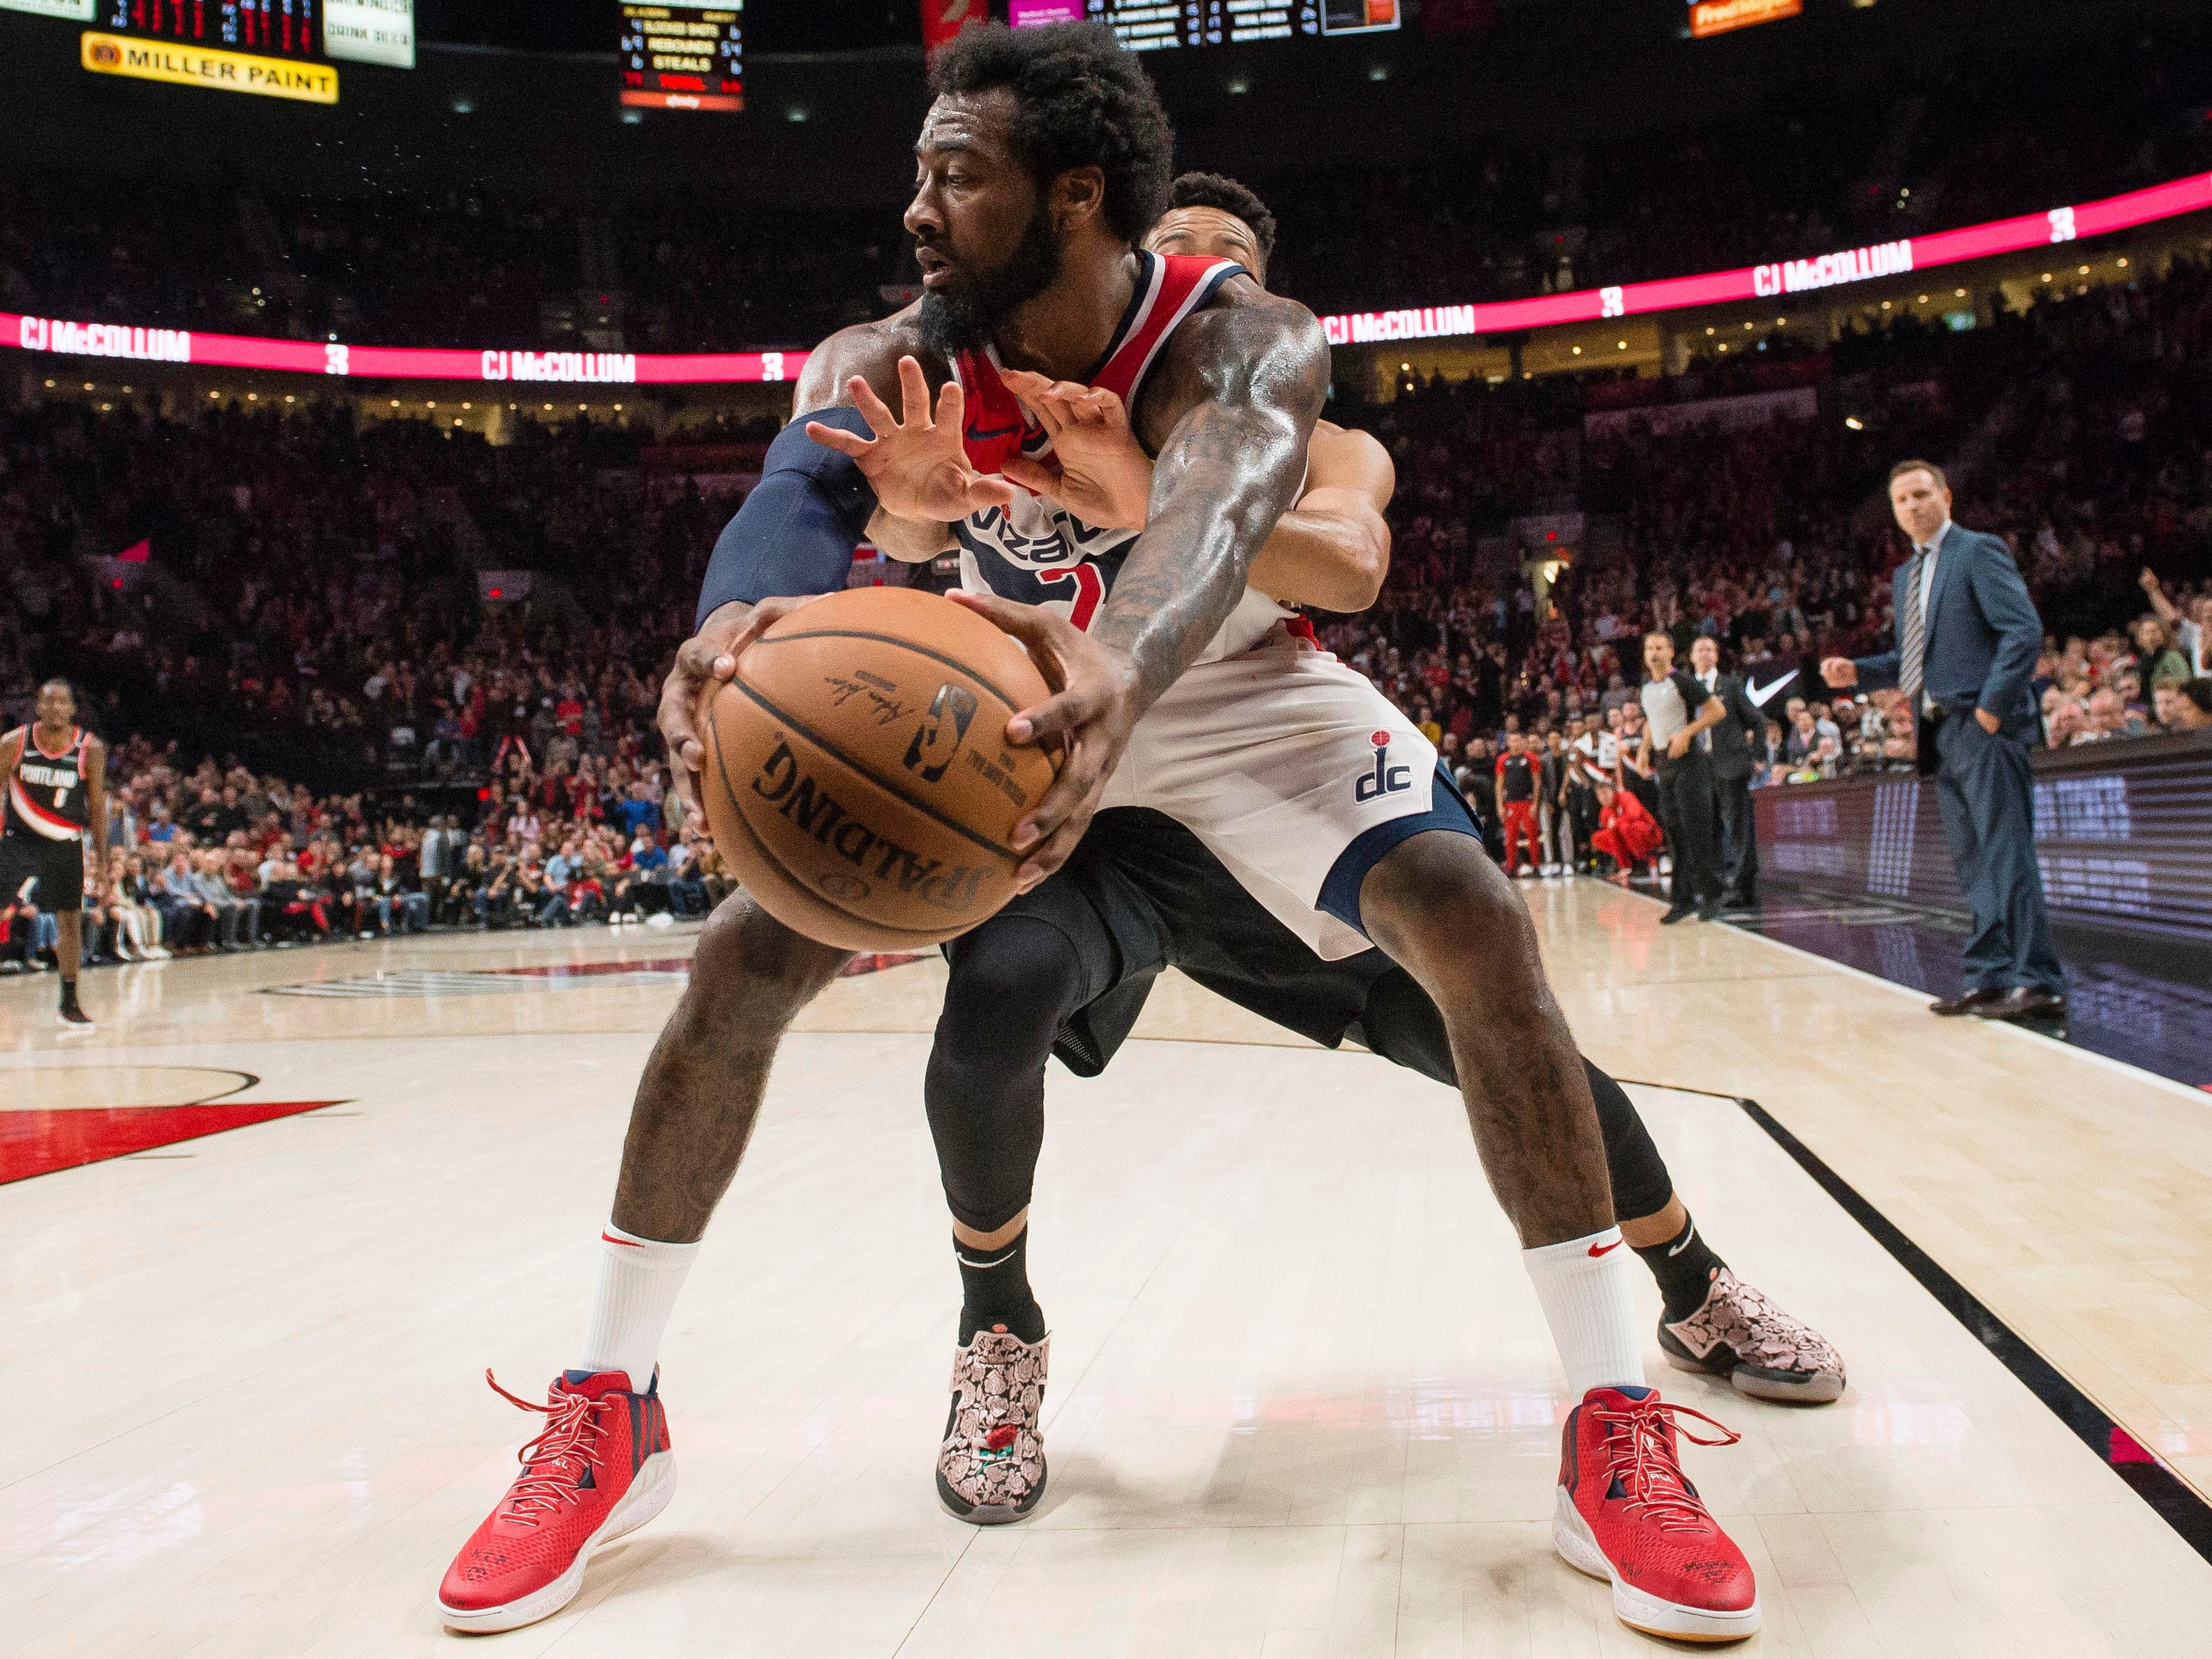 Oct. 22: Wizards guard John Wall, front, keeps the ball away from Trail Blazers defender C.J. McCollum during the second half in Portland.